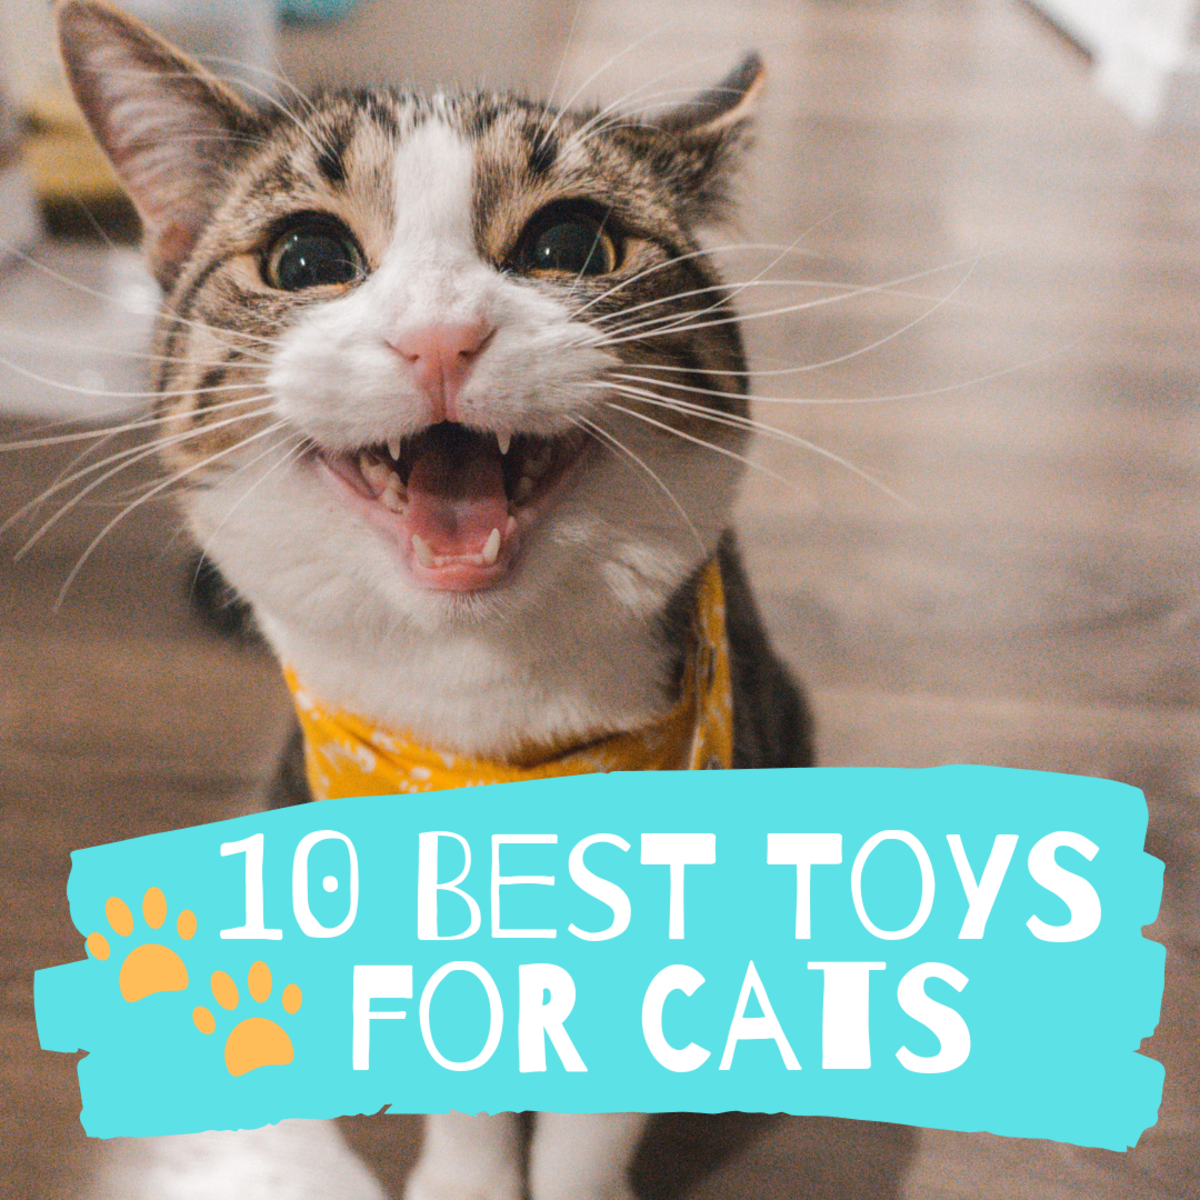 10 Top-Rated Toy Gifts for Cats for 2019